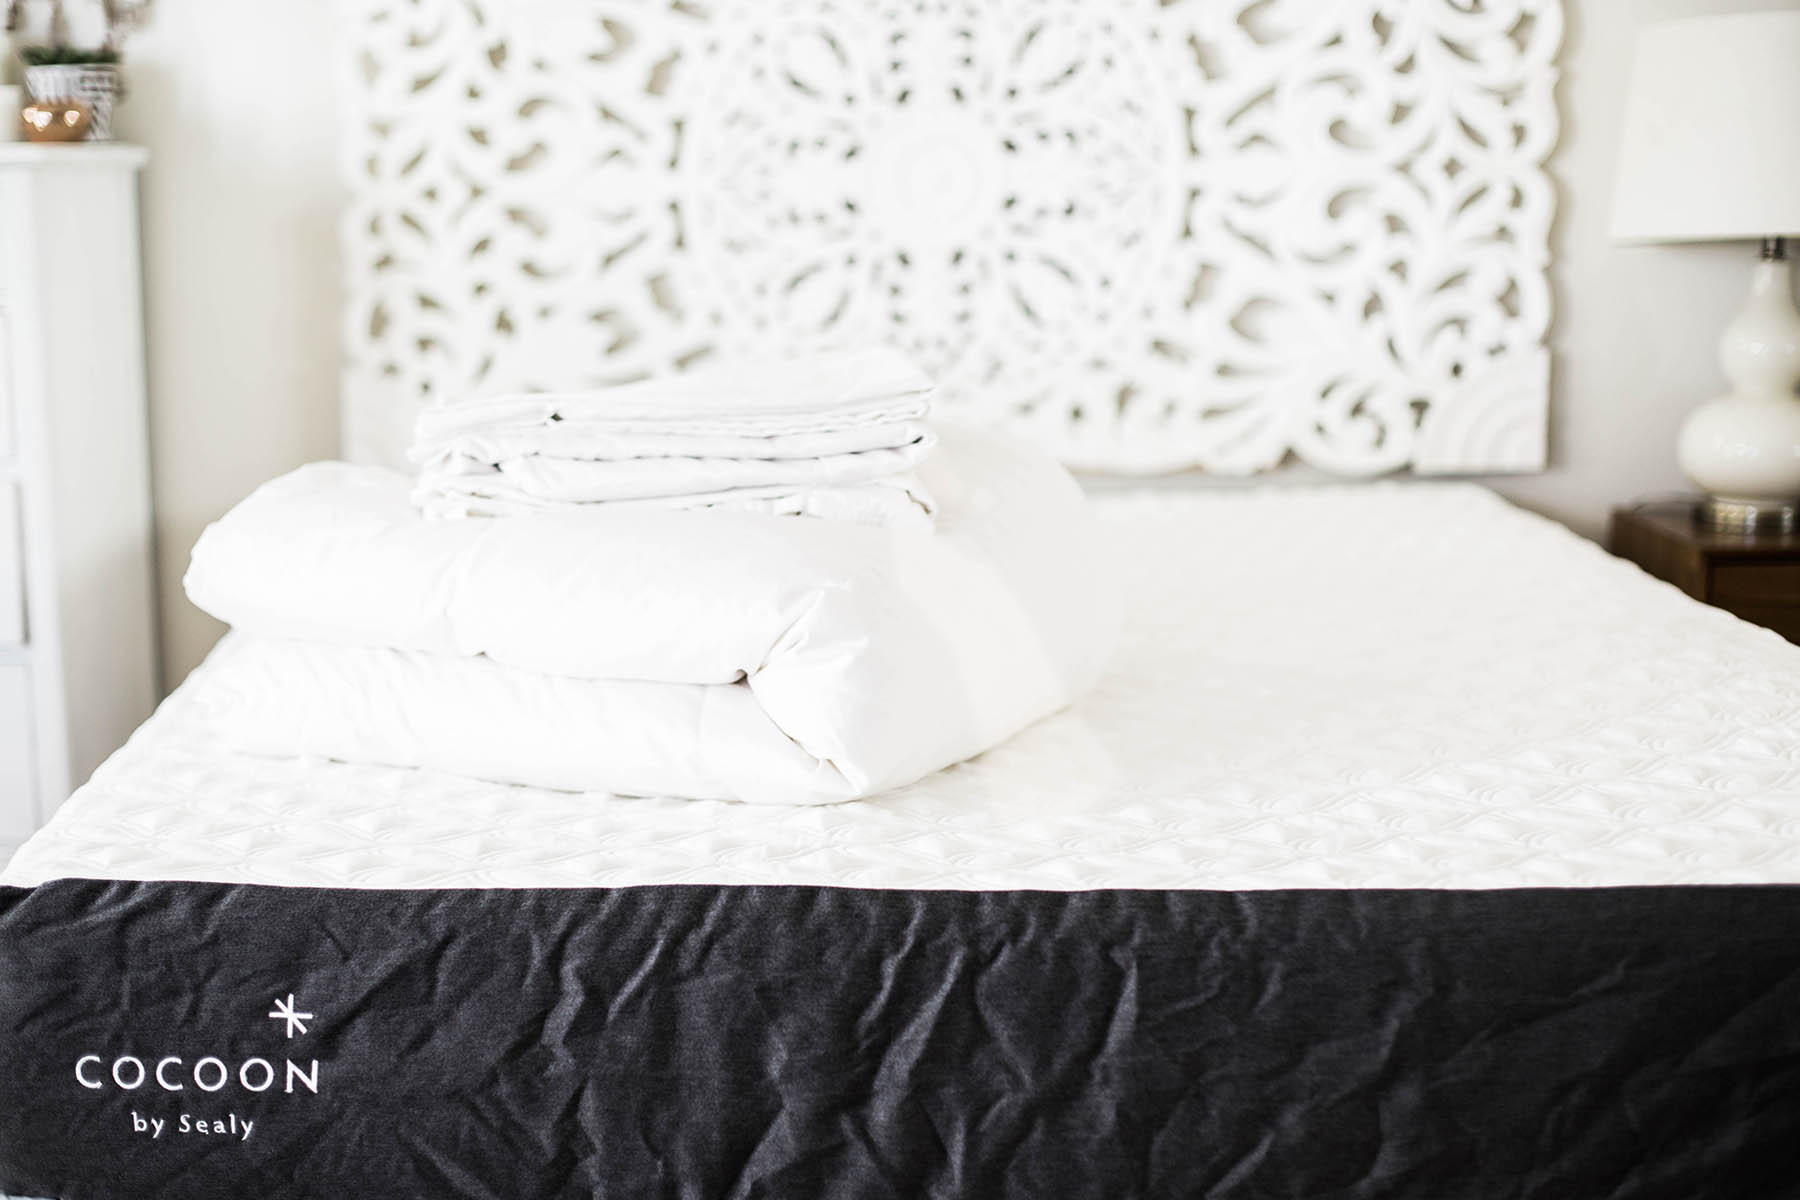 bedding basics, sheets, duvet, Cocoon by Sealy mattress